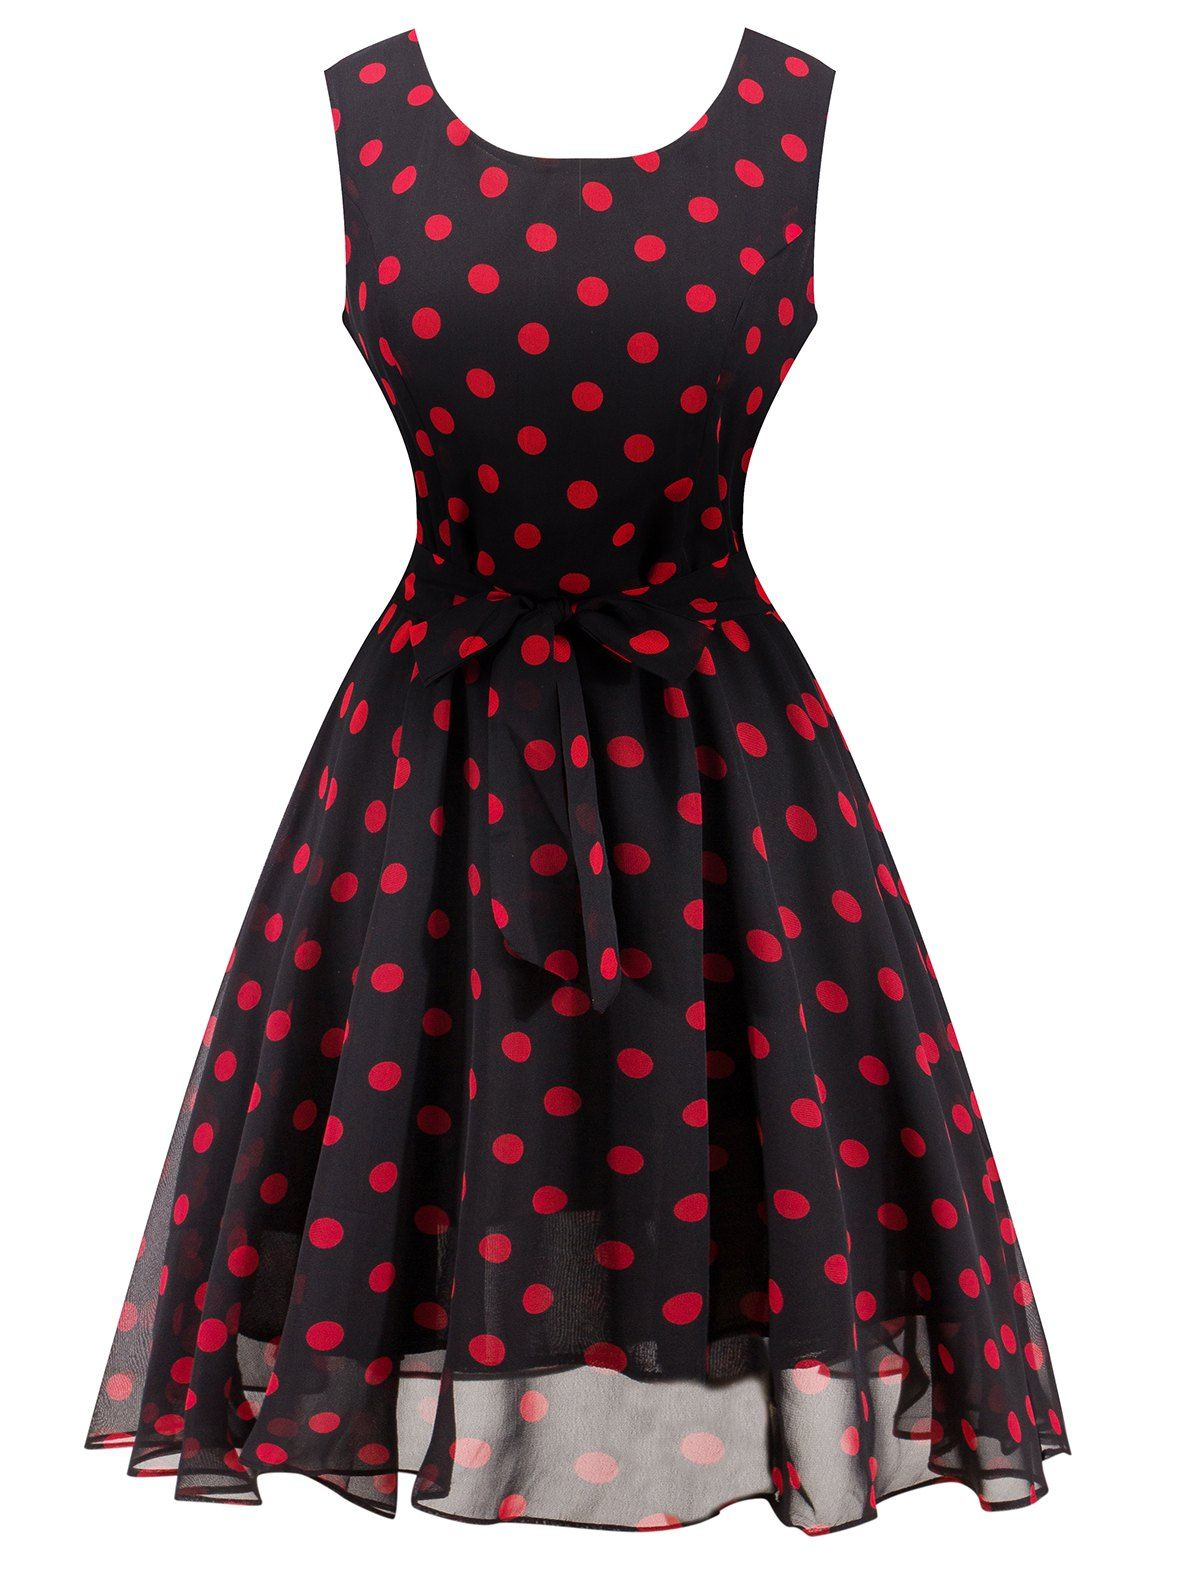 Fashionable polka dot dresses in retro style 27